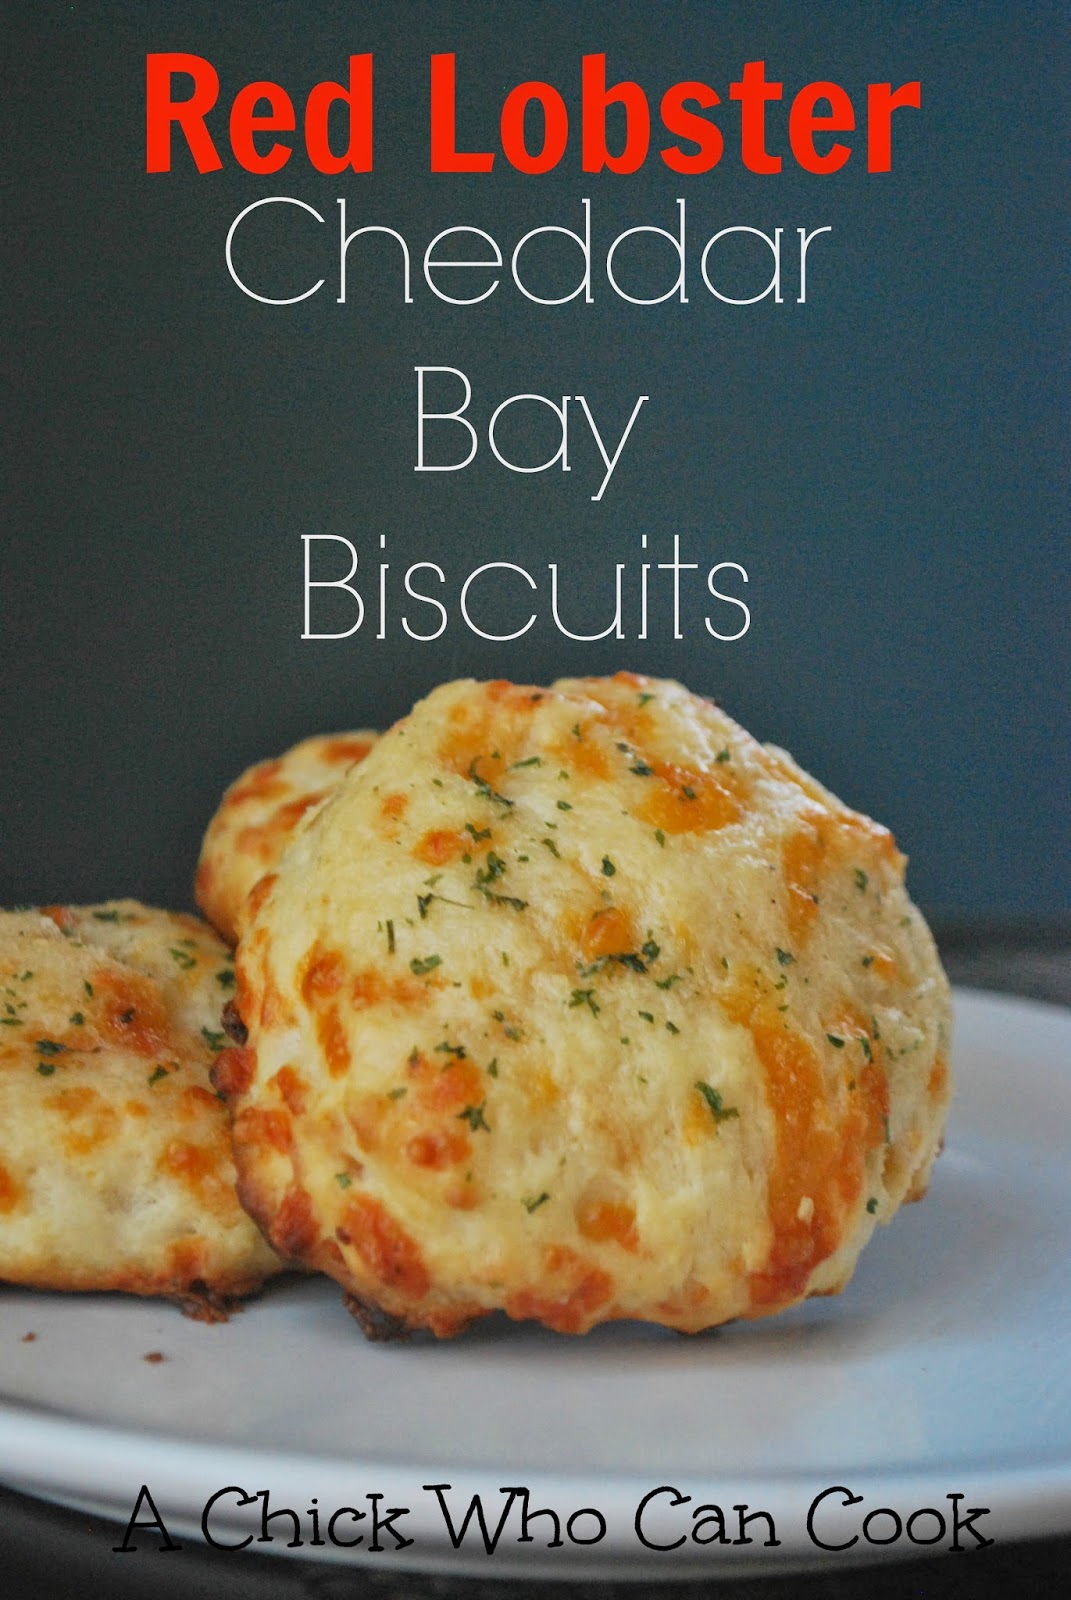 A Chick Who Can Cook: Red Lobster Cheddar Bay Biscuits